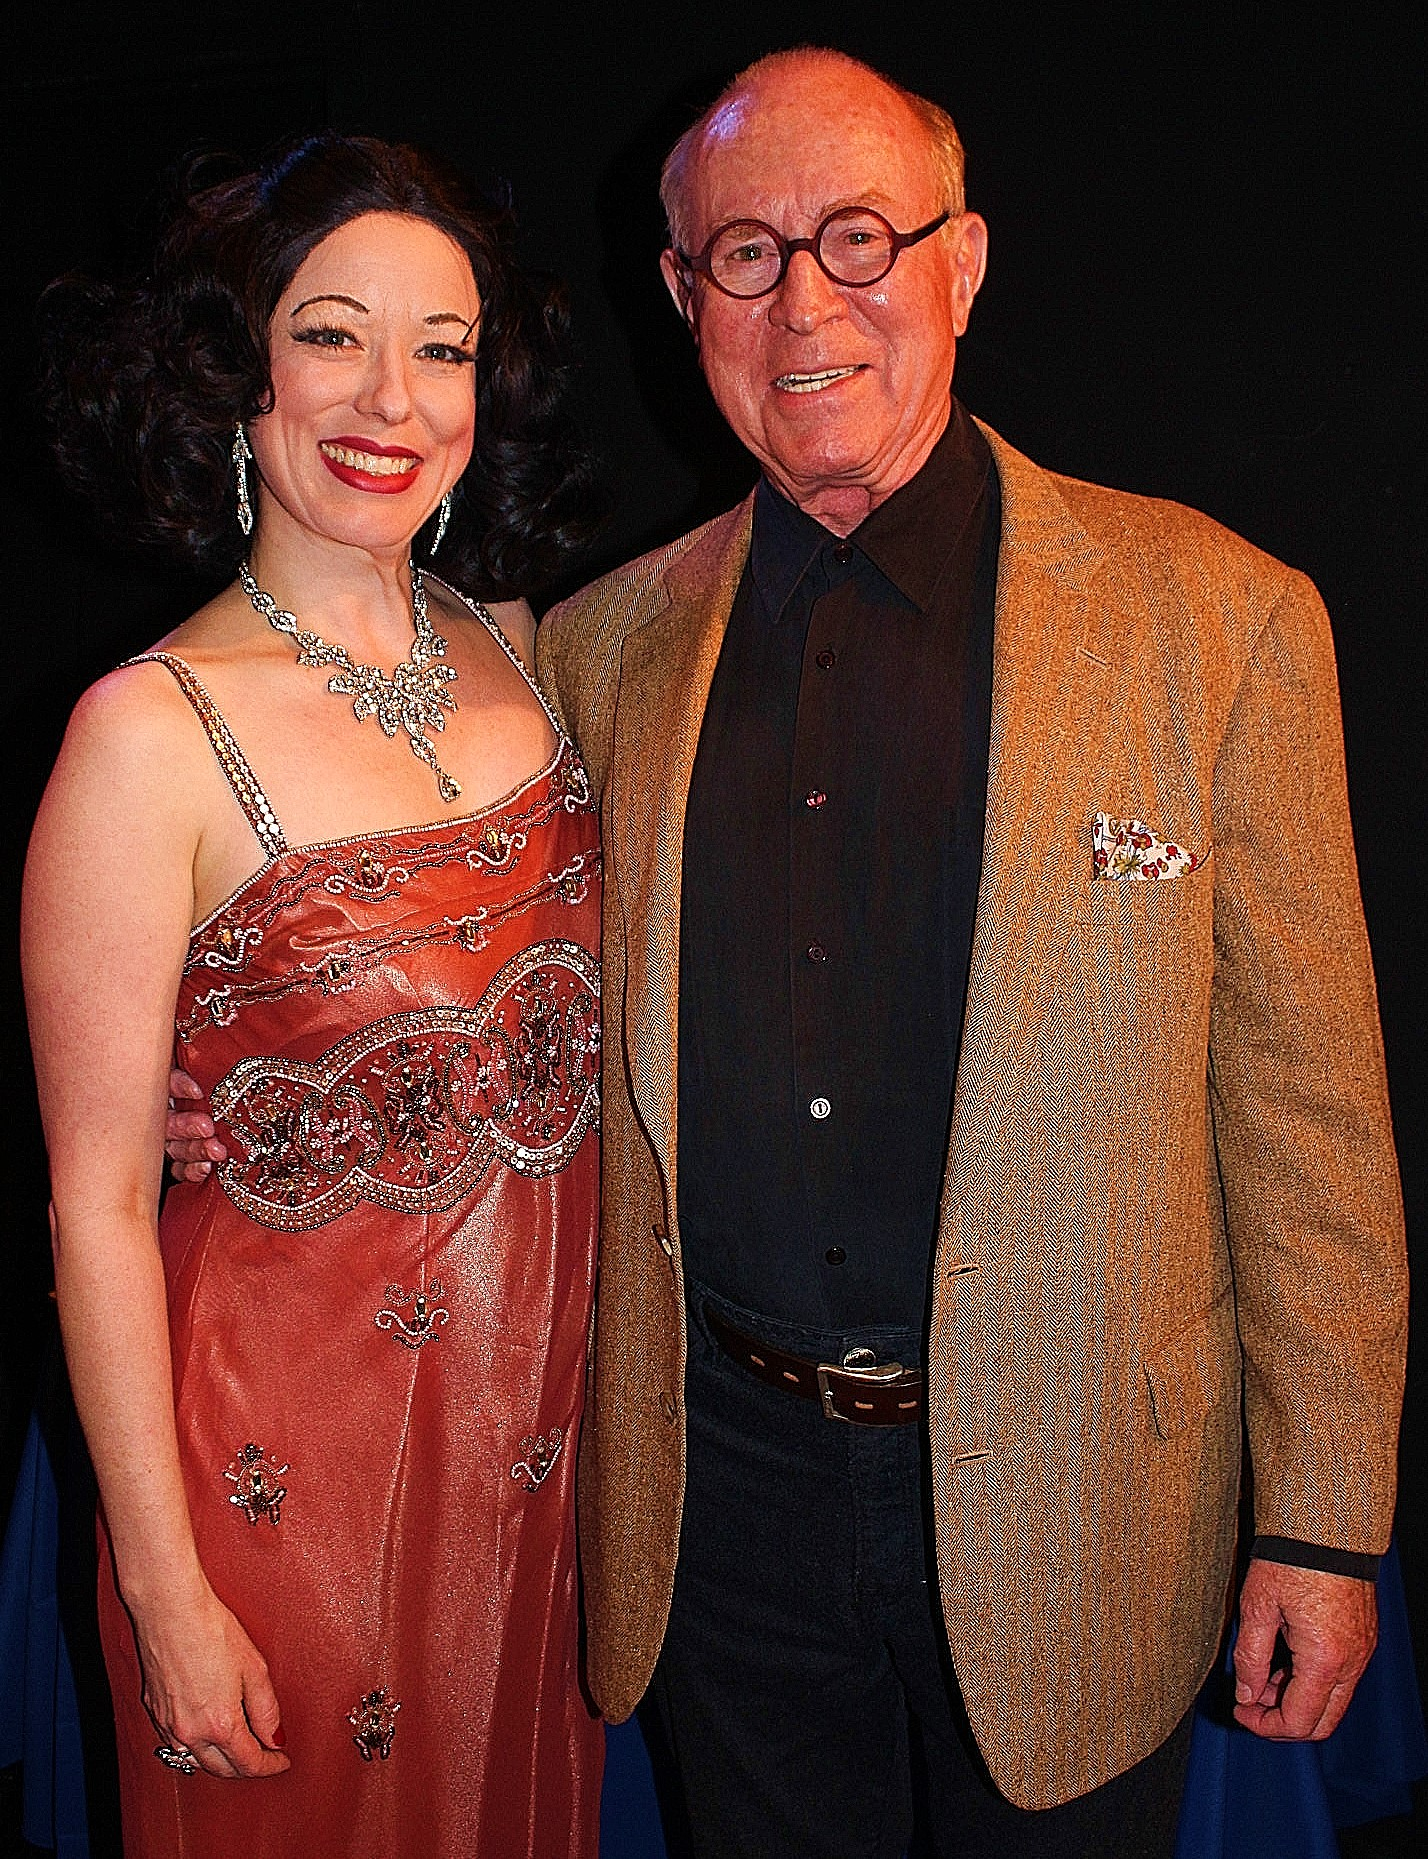 Heather Massie as Hedy Lamarr with Richard Rhodes, Hedy's biographer - Hedy's Folly: The Life and Breakthrough Inventions of Hedy Lamarr The Most Beautiful Woman in the World